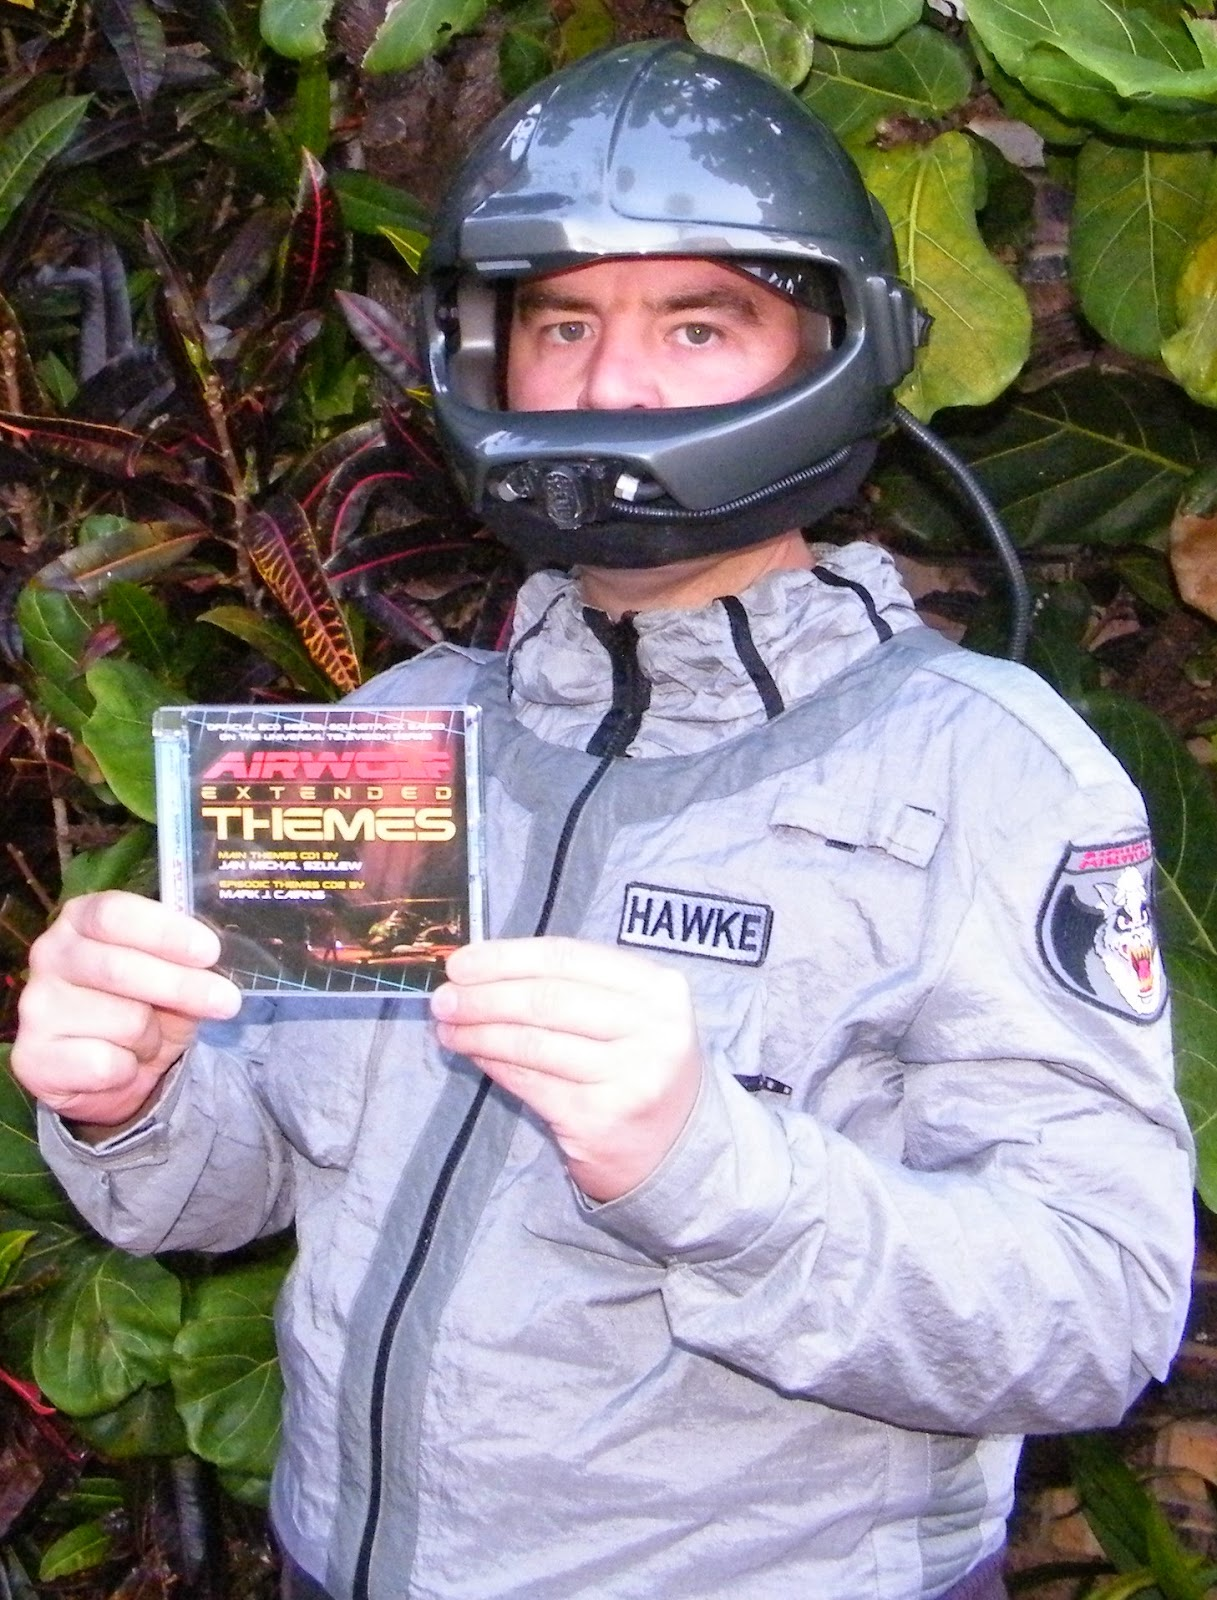 South Africa Airwolf fan, Gérann Gerber with the Airwolf Extended Themes 2CD, in his Replica Flightsuit & Helmet created by Steven W. Stull